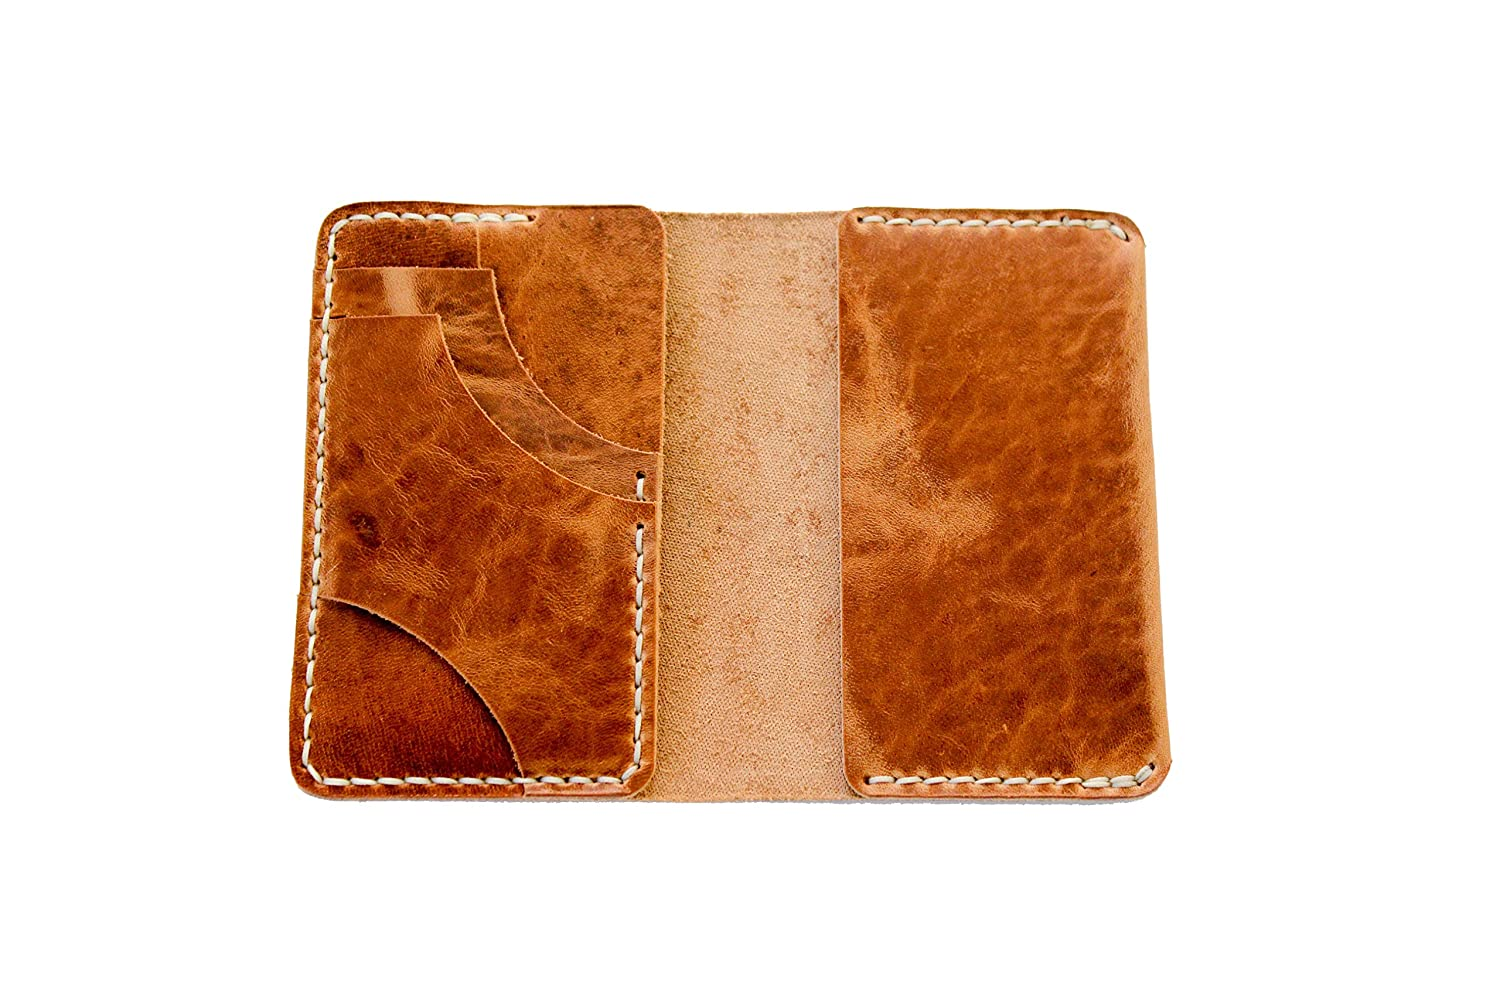 Luxury Hand-Made Leather Wallet by Rose Anvil Slim Front Pocket Wallet Genuine Leather The Ambrose